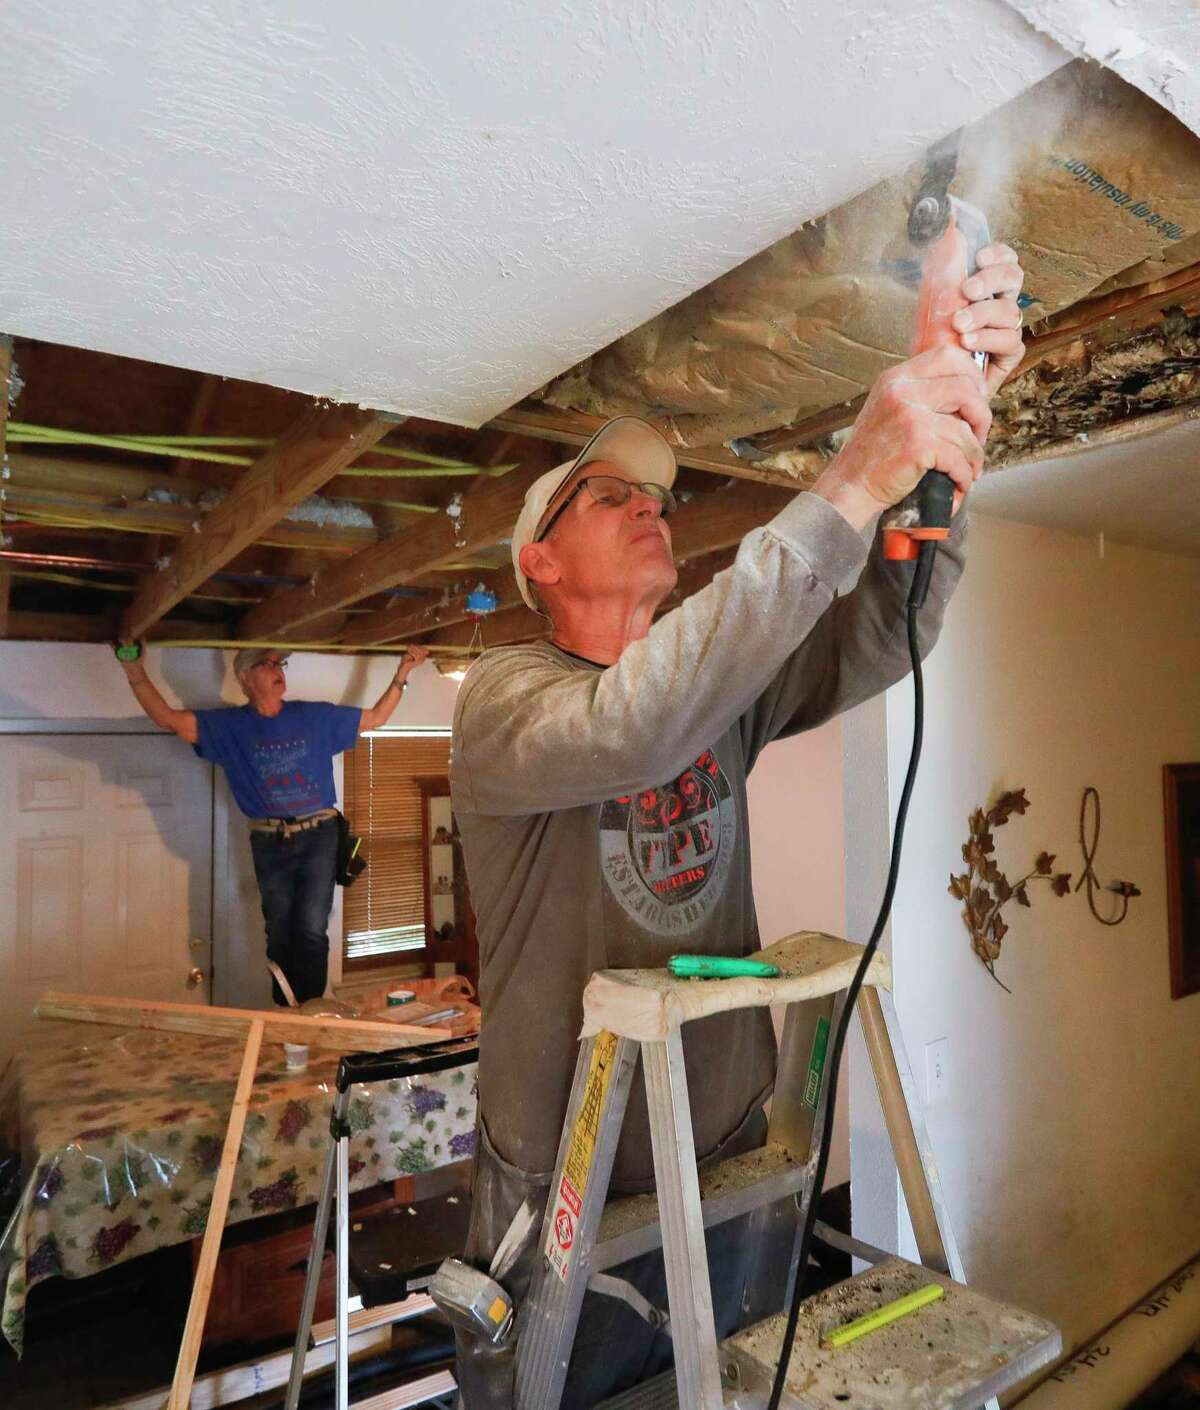 """Allan Schneider, left, cuts drywall as Jerry Neuberger measures a wall while helping repair Delia Brown's water-damaged home from February's arctic blast, Tuesday, March 23, 2021, in Conroe. 'They've been such a blessing to me,"""" Brown said. """"I don't know what I would have done without them."""" Schneider and Neuberger are part of The Woodlands Methodist Church's 60-member 'Geezer Group,' a group of volunteers help those in need with small construction projects usually after natural disasters."""